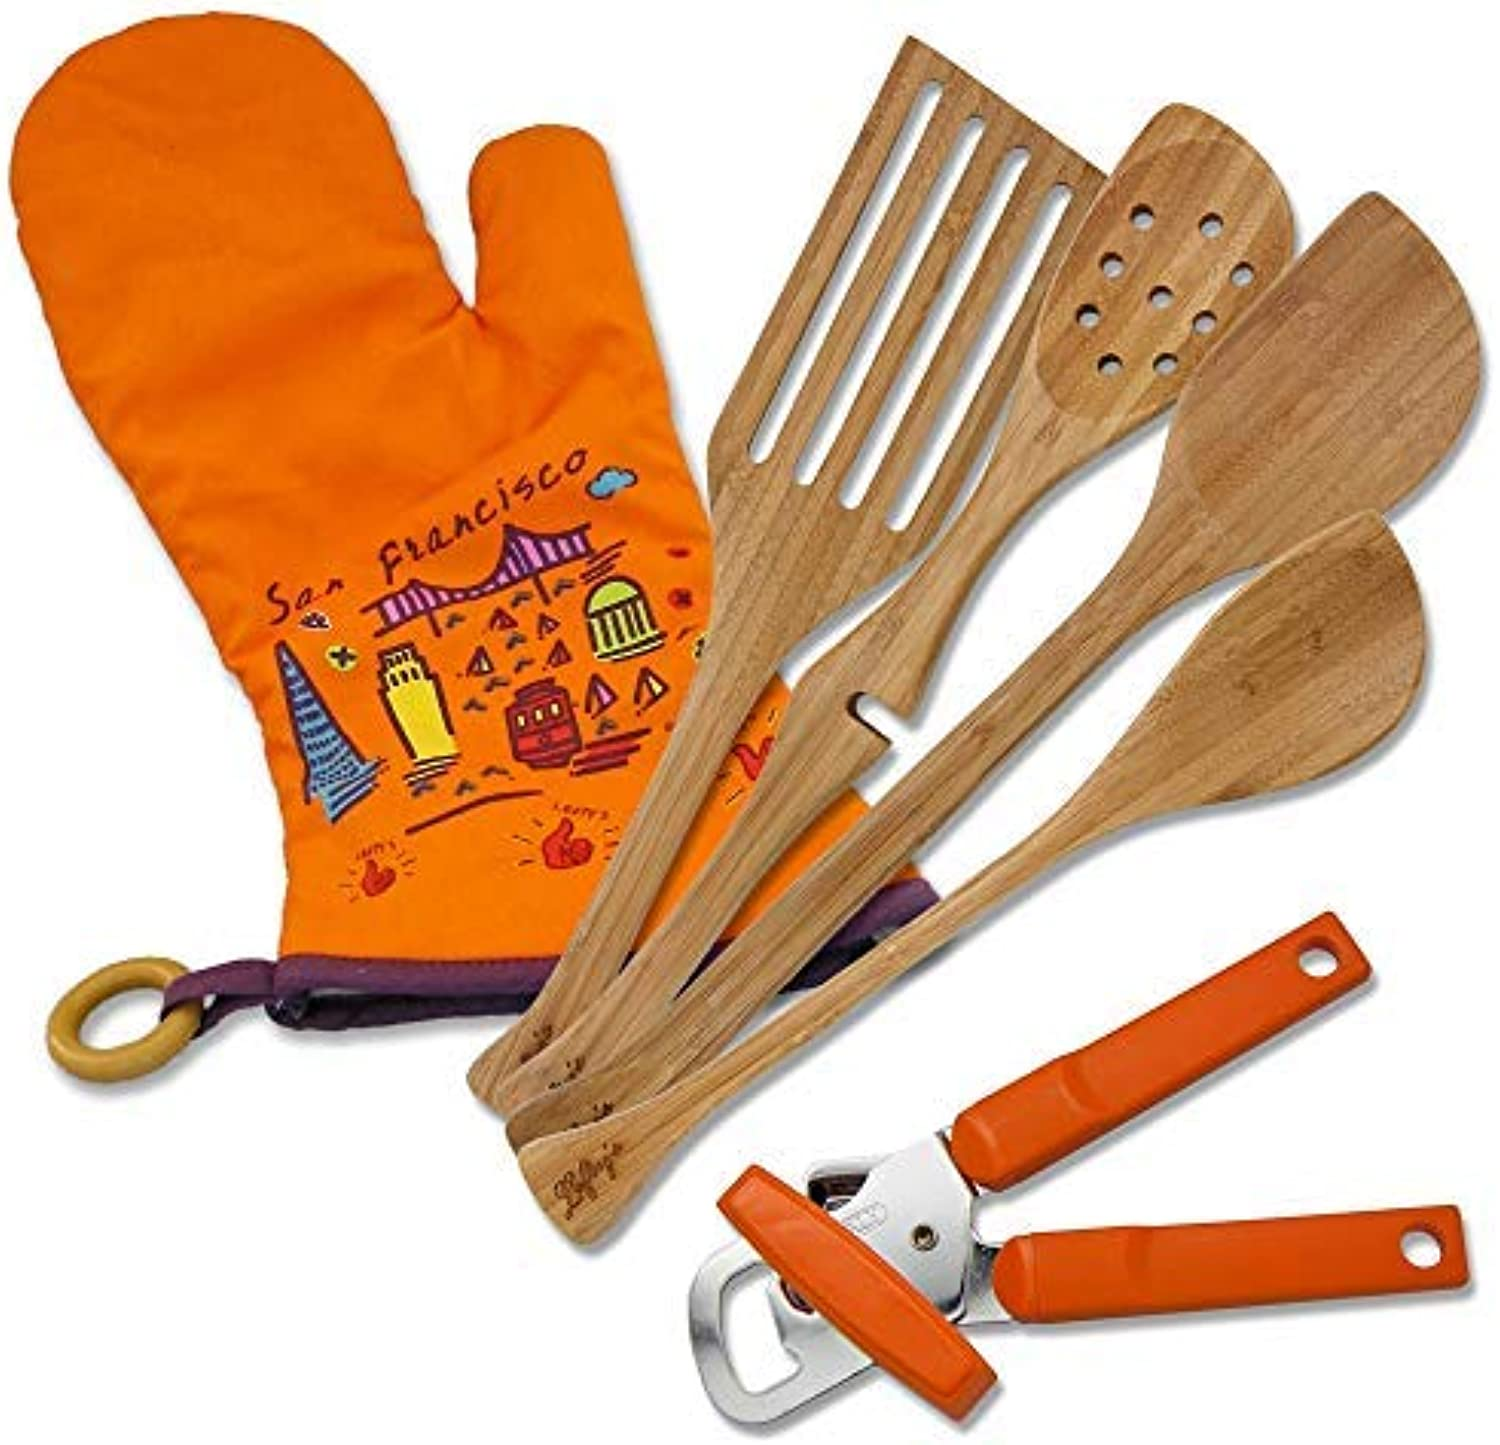 Lefty's Kitchen Tool Set Includes Left Handed Can Opener, 4 Bamboo Utensils, and orange Mitt 6 Pcs.